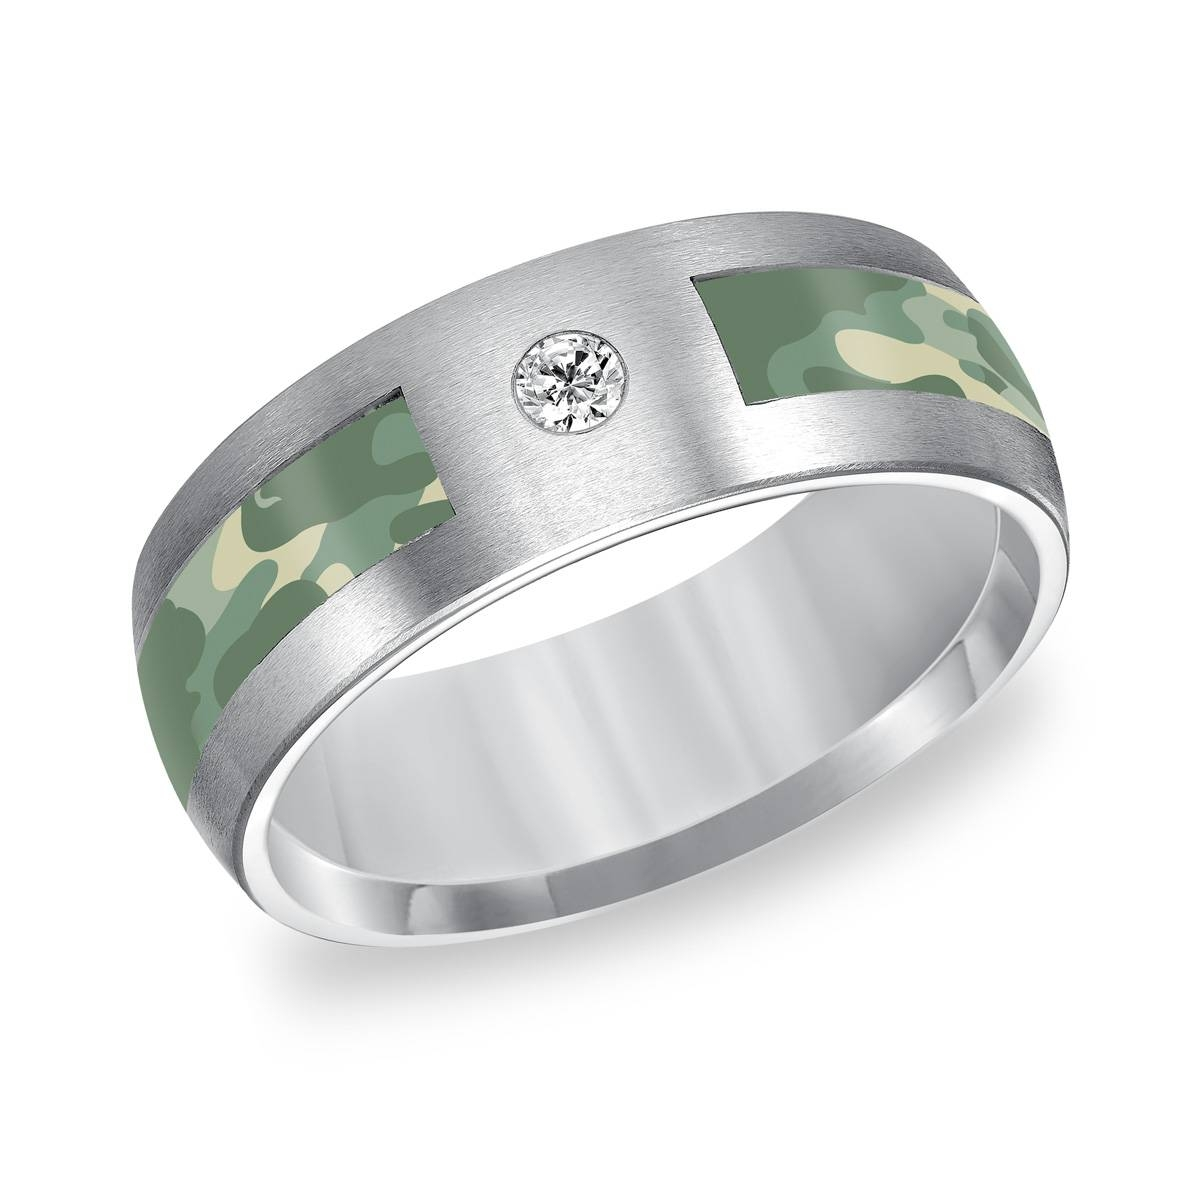 Triton Tungsten Carbide 8Mm Diamond Wedding Band With Green With Green Men's Wedding Bands (View 14 of 15)